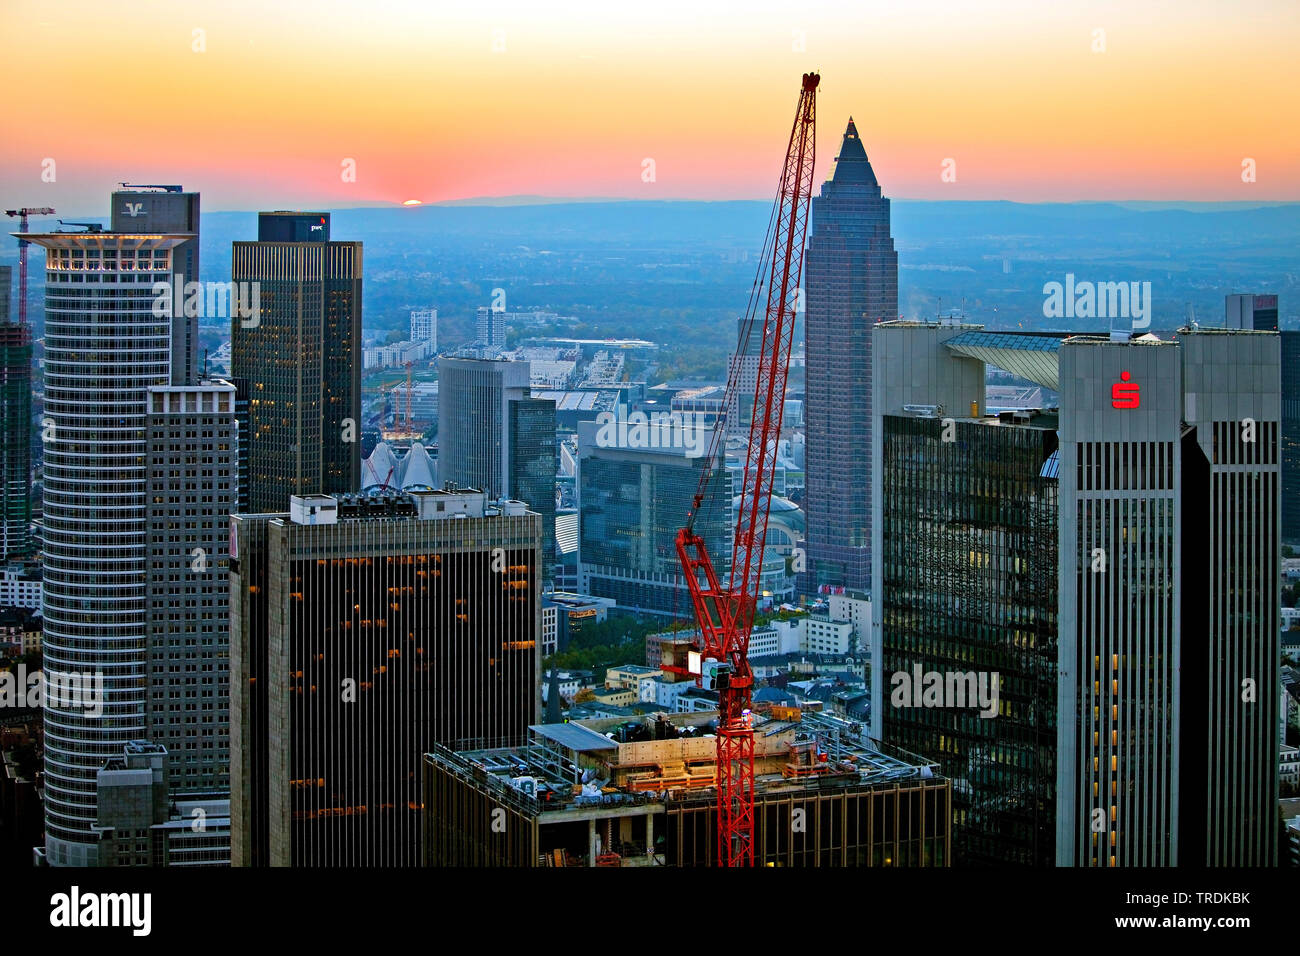 view from Main Tower to construction site in the financial district in the evening, Germany, Hesse, Frankfurt am Main Stock Photo